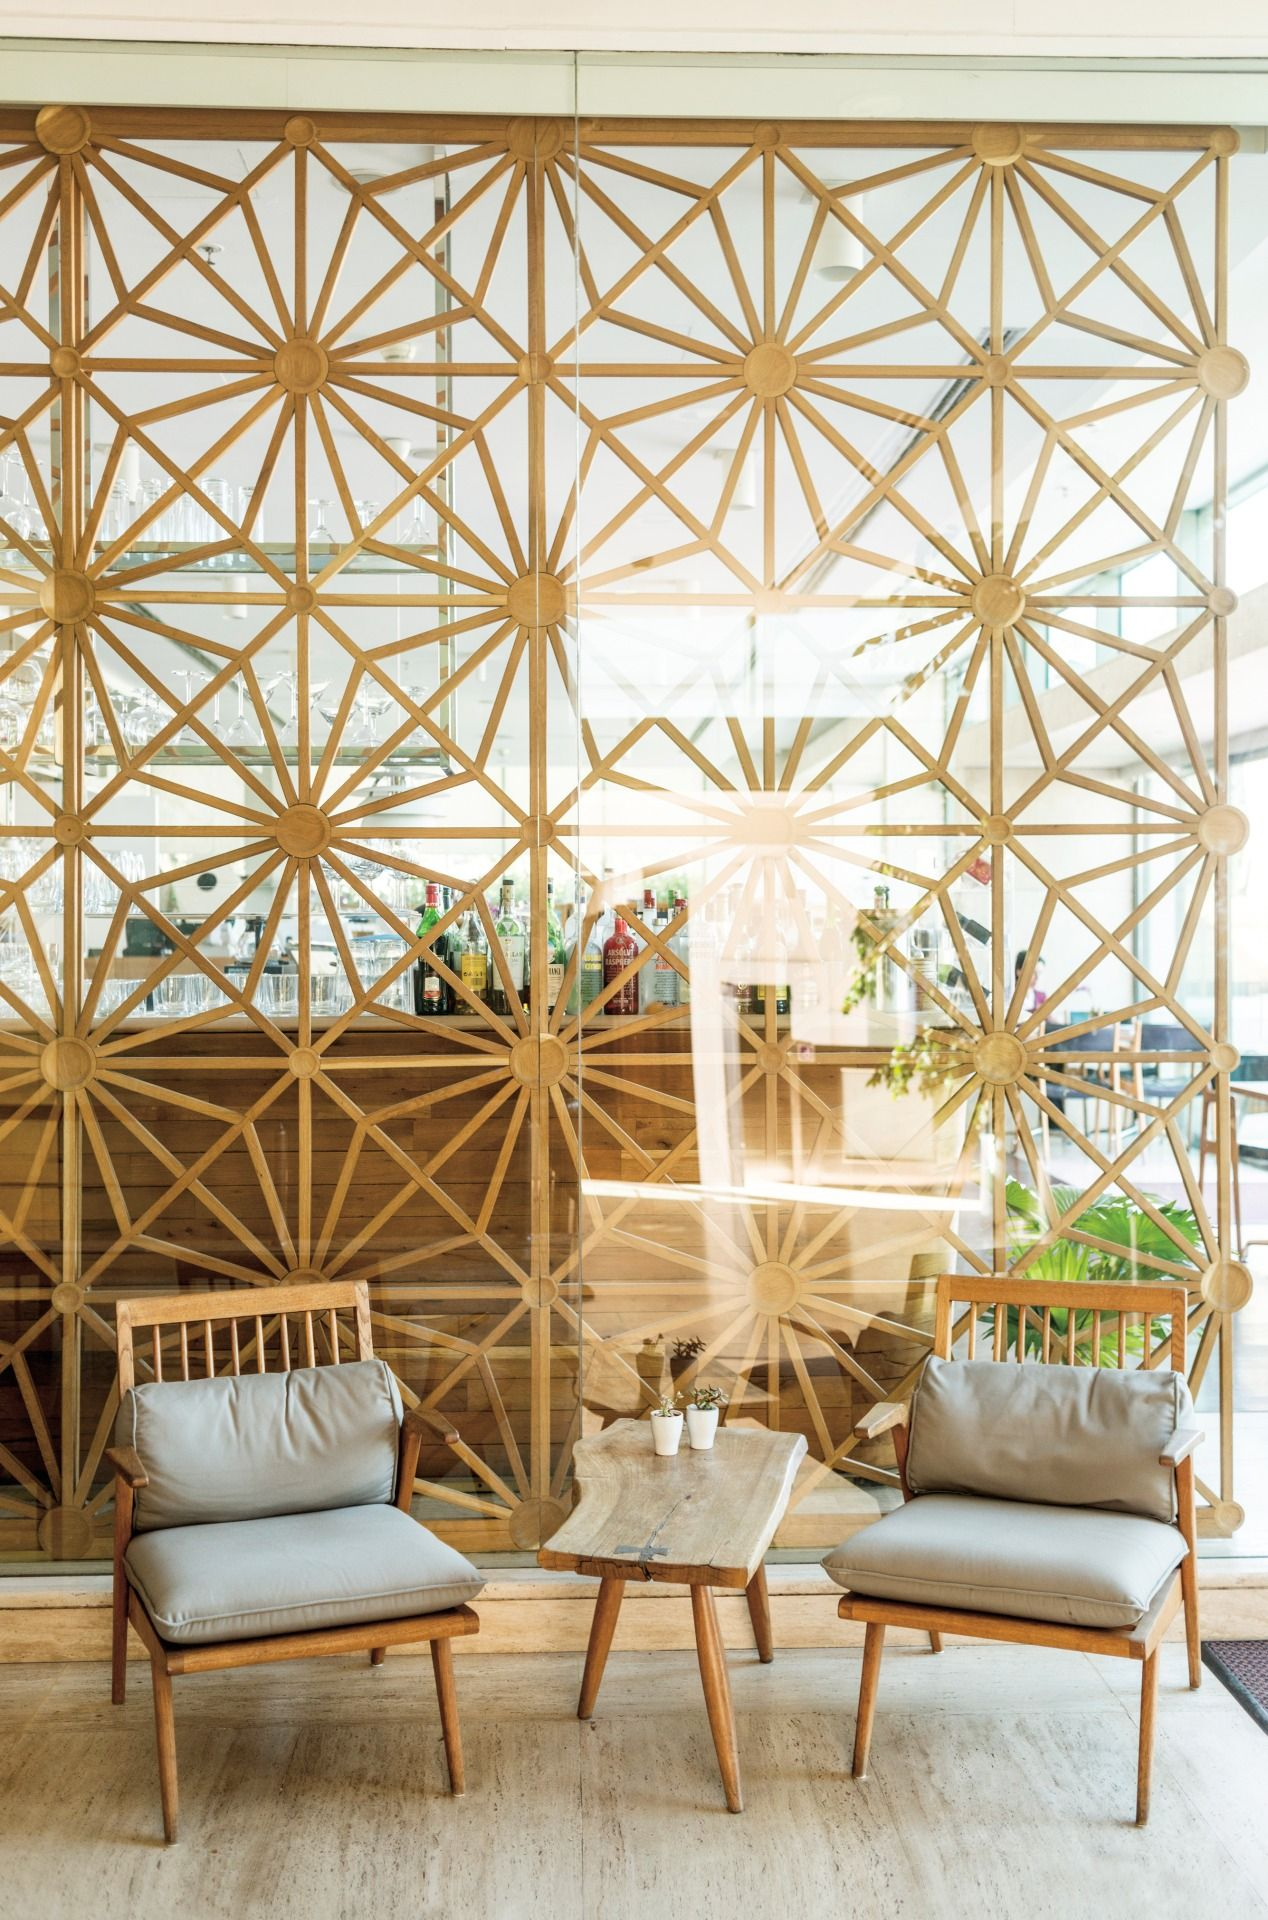 Istanbul S Muzedechanga Restaurant Has A 60s Decor Inspired By The Designers Parents Modern Room Divider House Design Modern Room